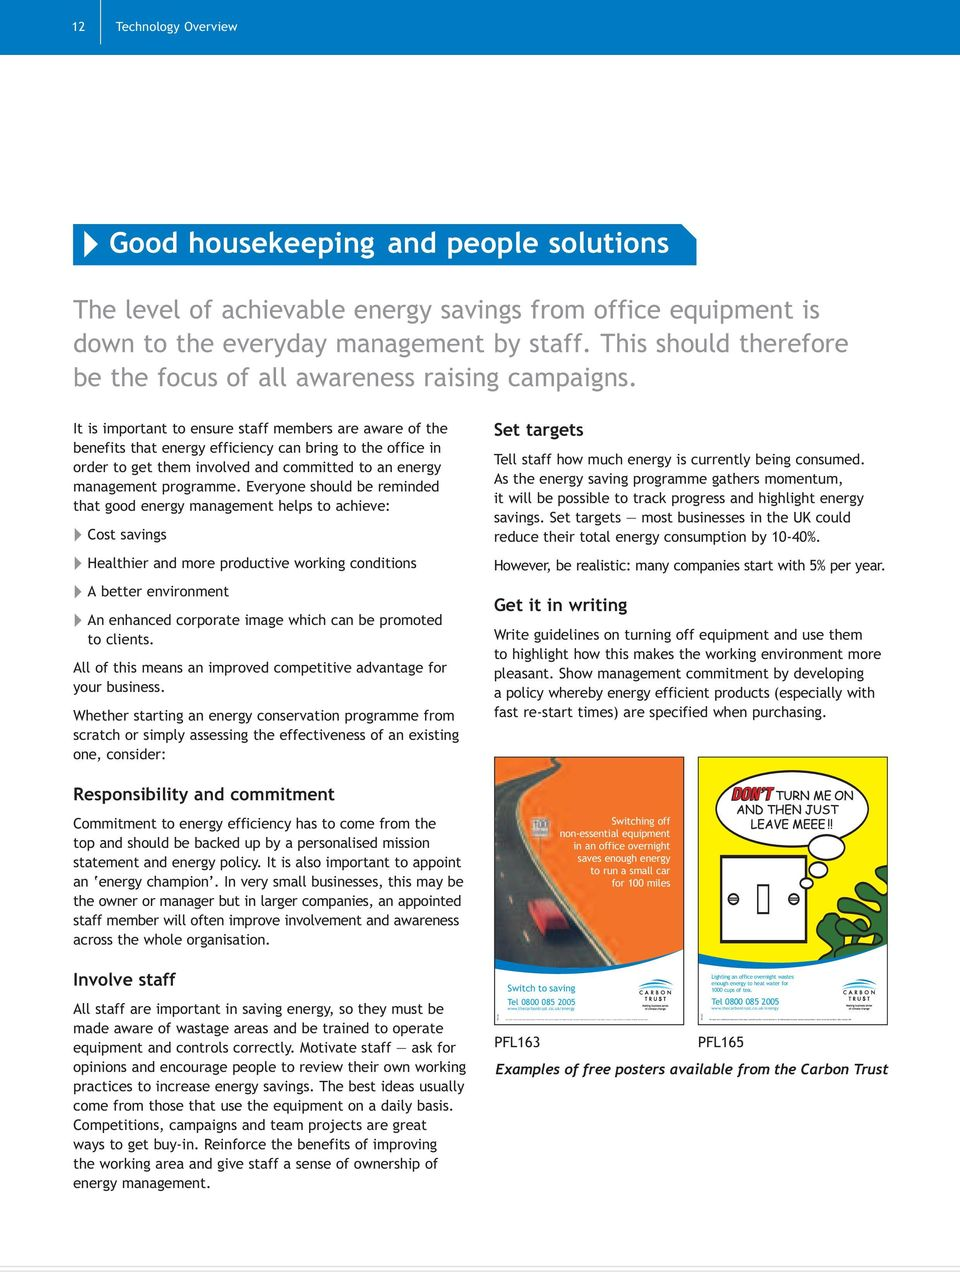 12 Technology Overview Good housekeeping and people solutions The level of achievable energy savings from office equipment is down to the everyday management by staff.